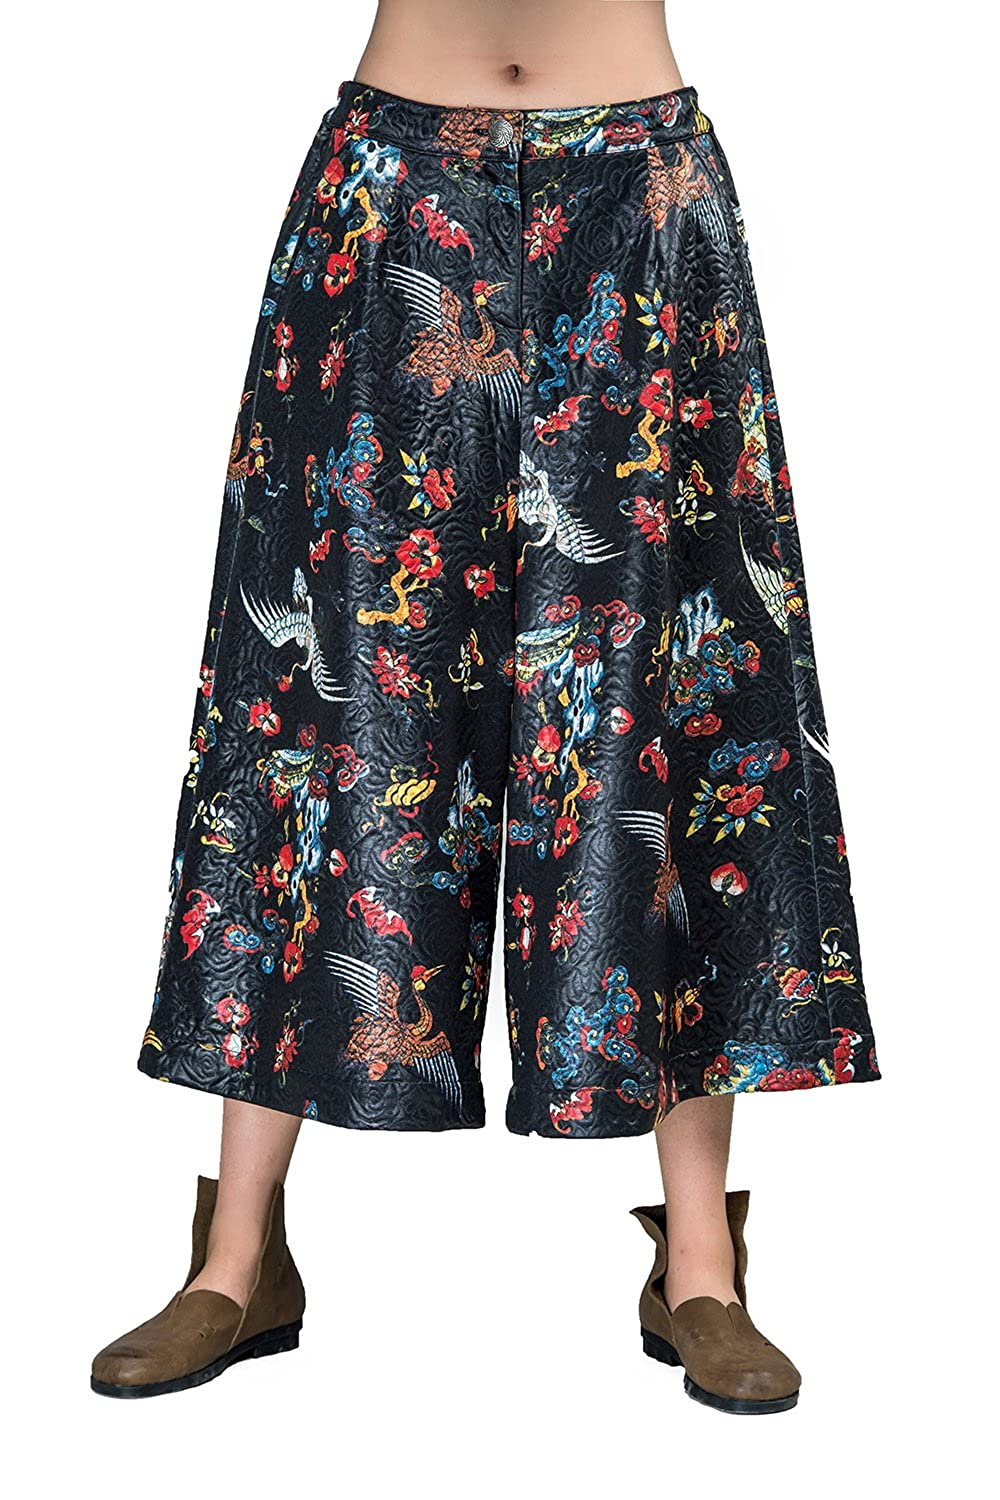 OUTLINE Women's Ethnic Chinese Print Three Quarter Wide Leg Pants With Pockets